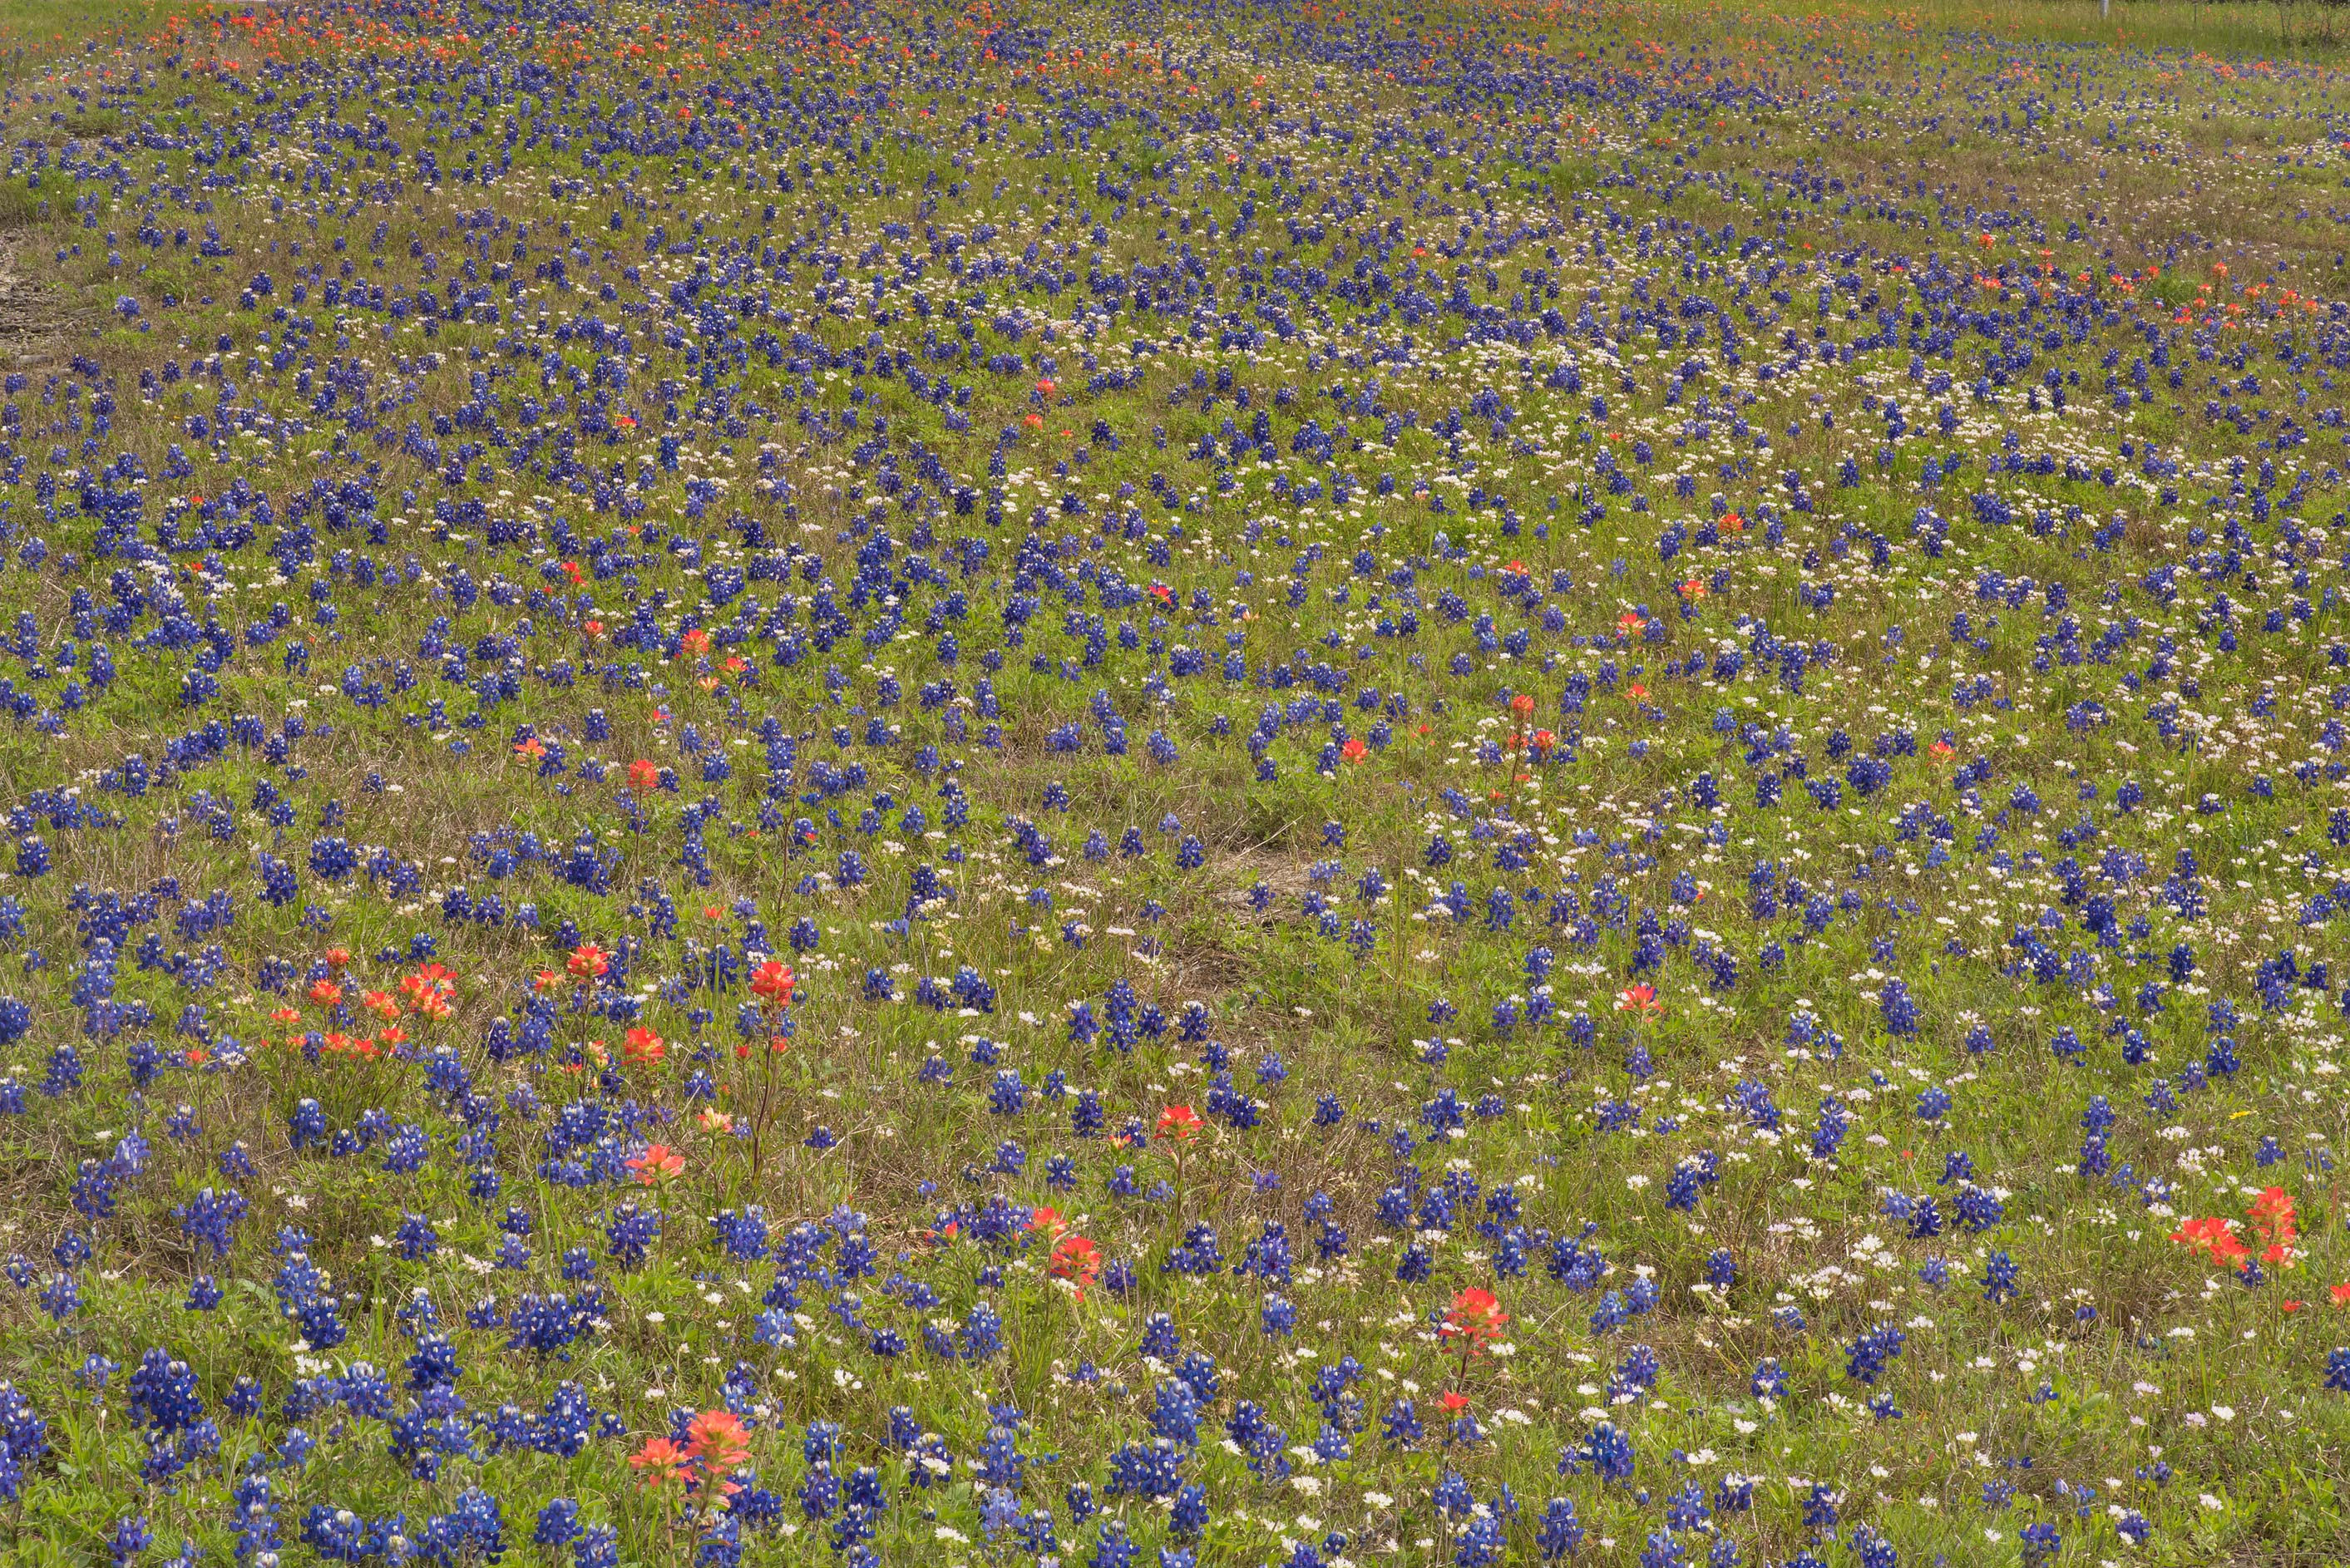 Bluebonnet (Lupinus) and paintbrush in Old Baylor Park. Independence, Texas